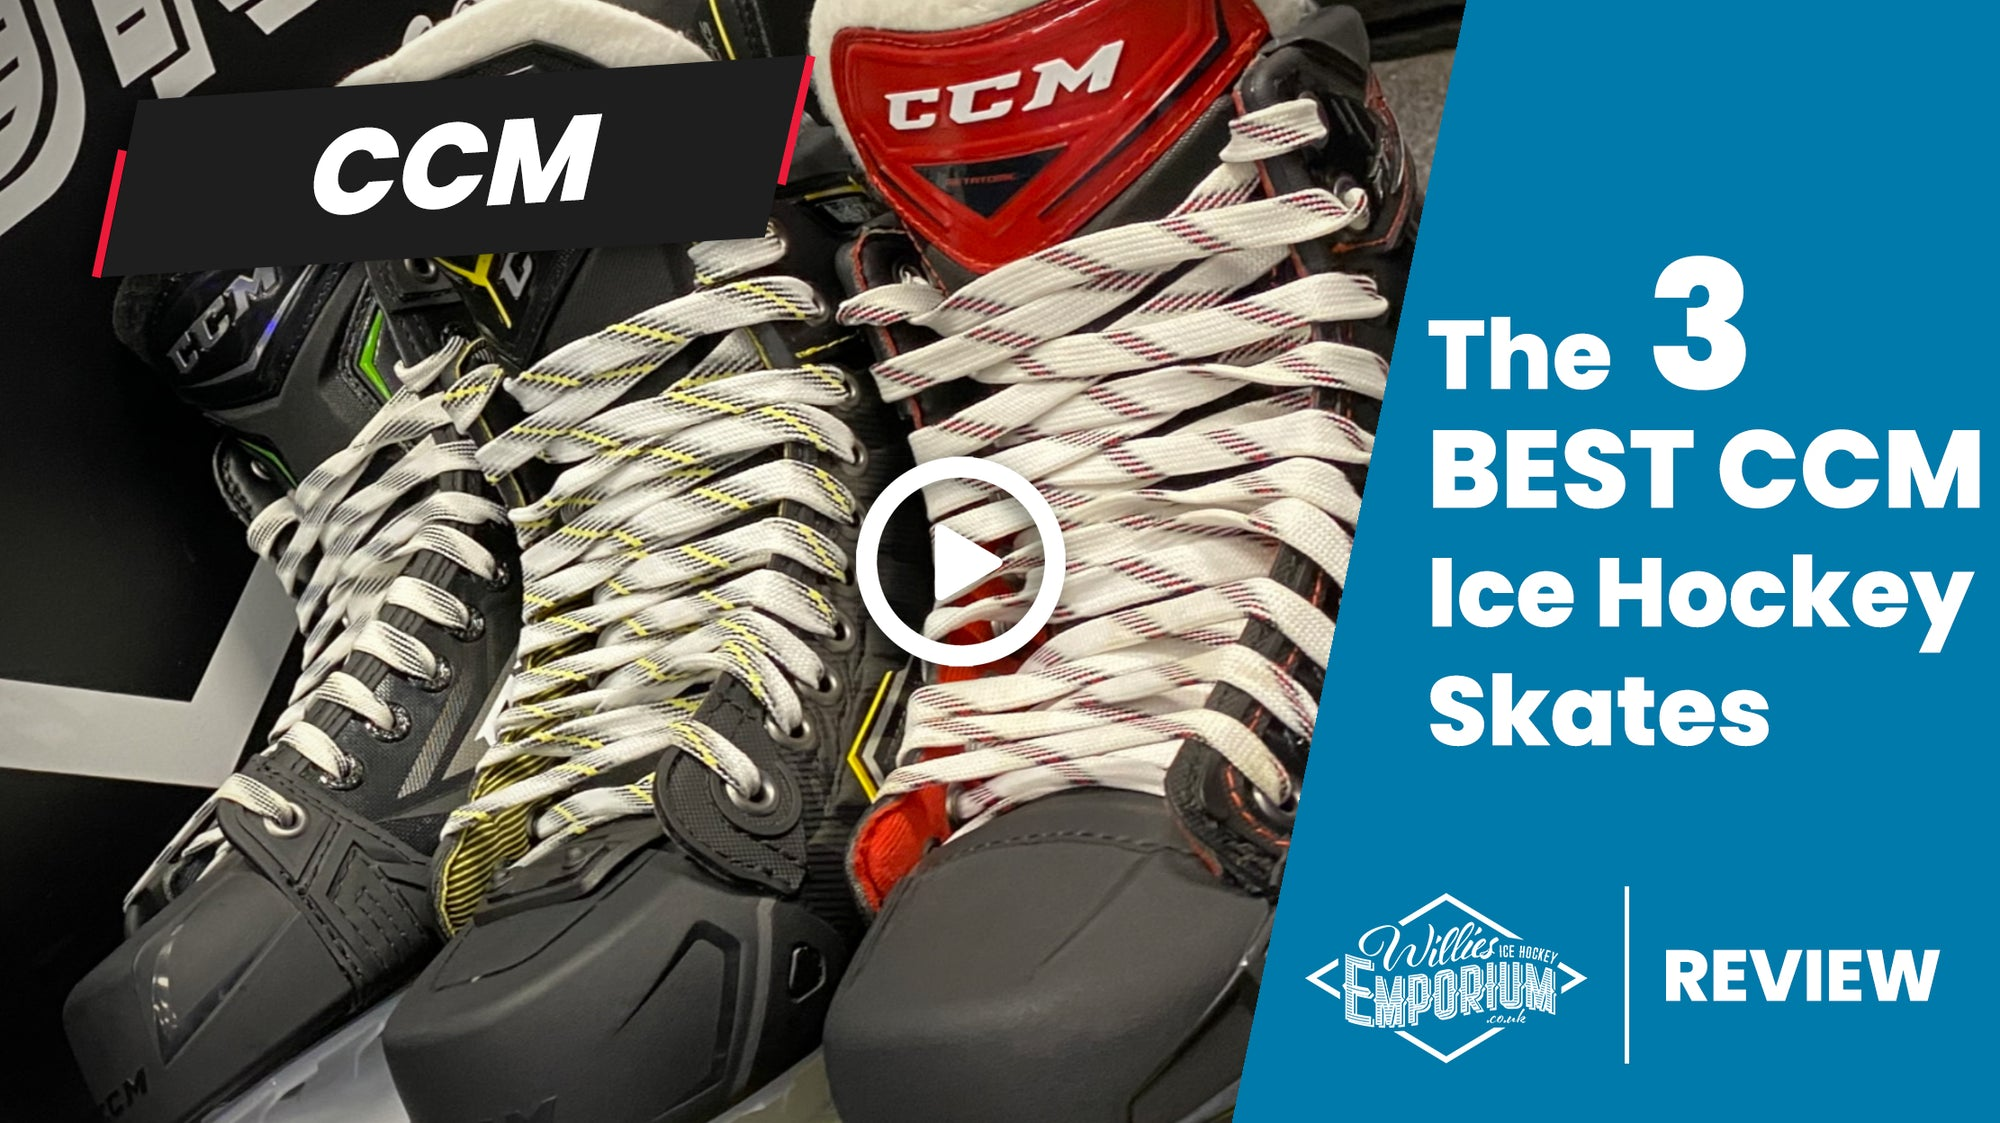 The 3 Best CCM Ice Hockey Skates